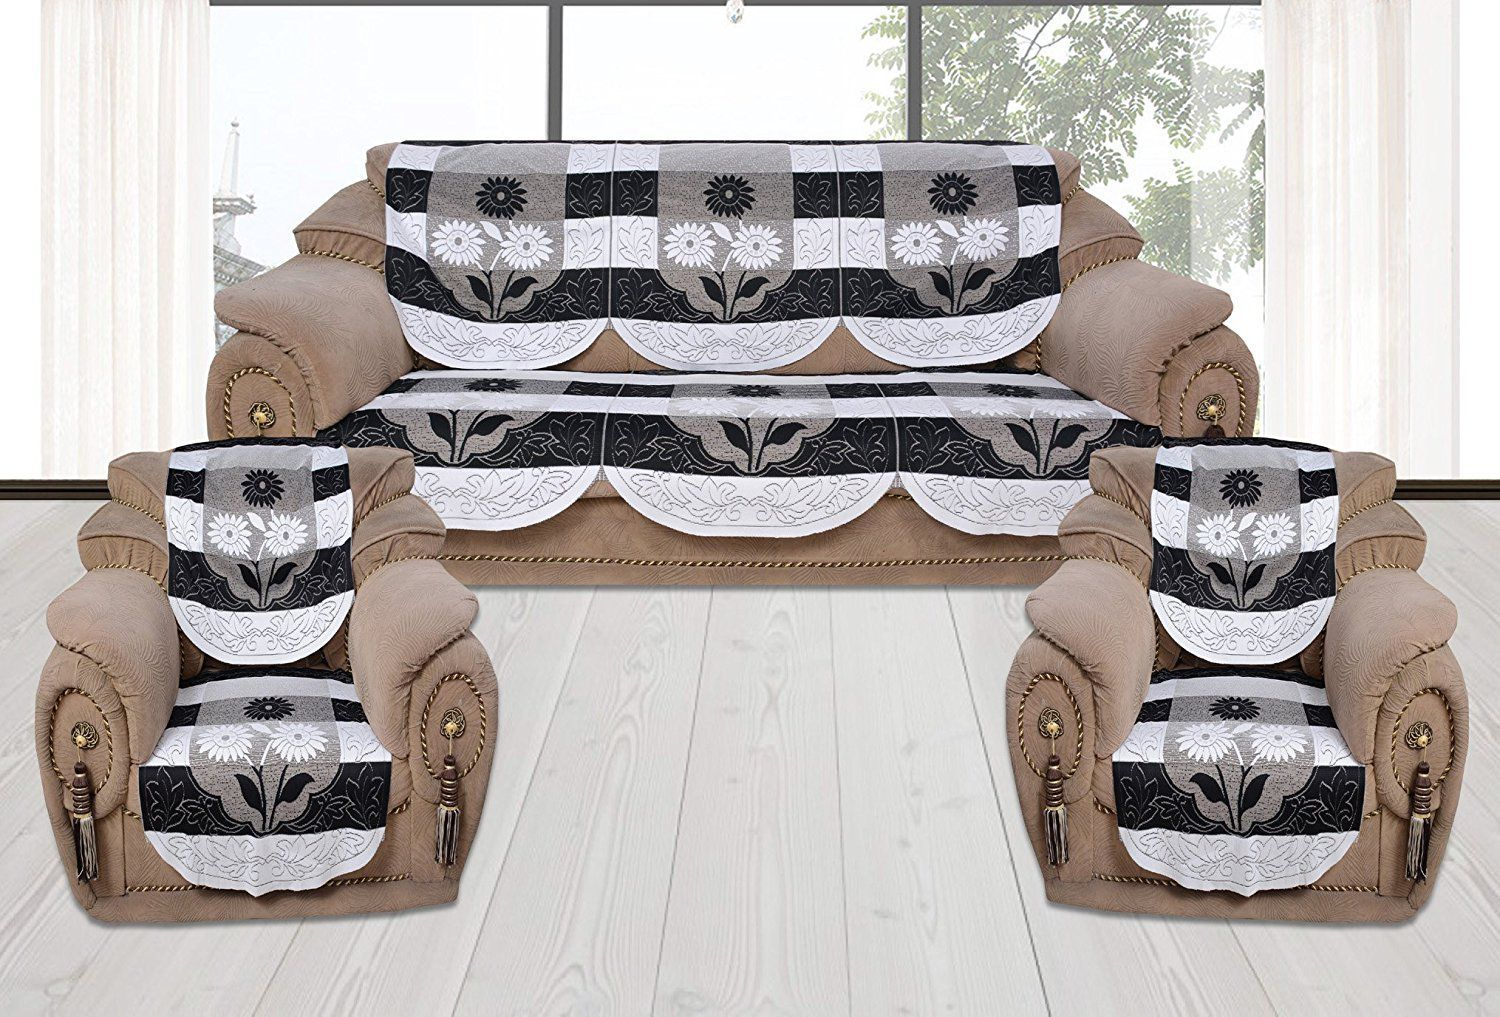 Home Stay 5 Seater Cotton Set of 10 Sofa Cover Set